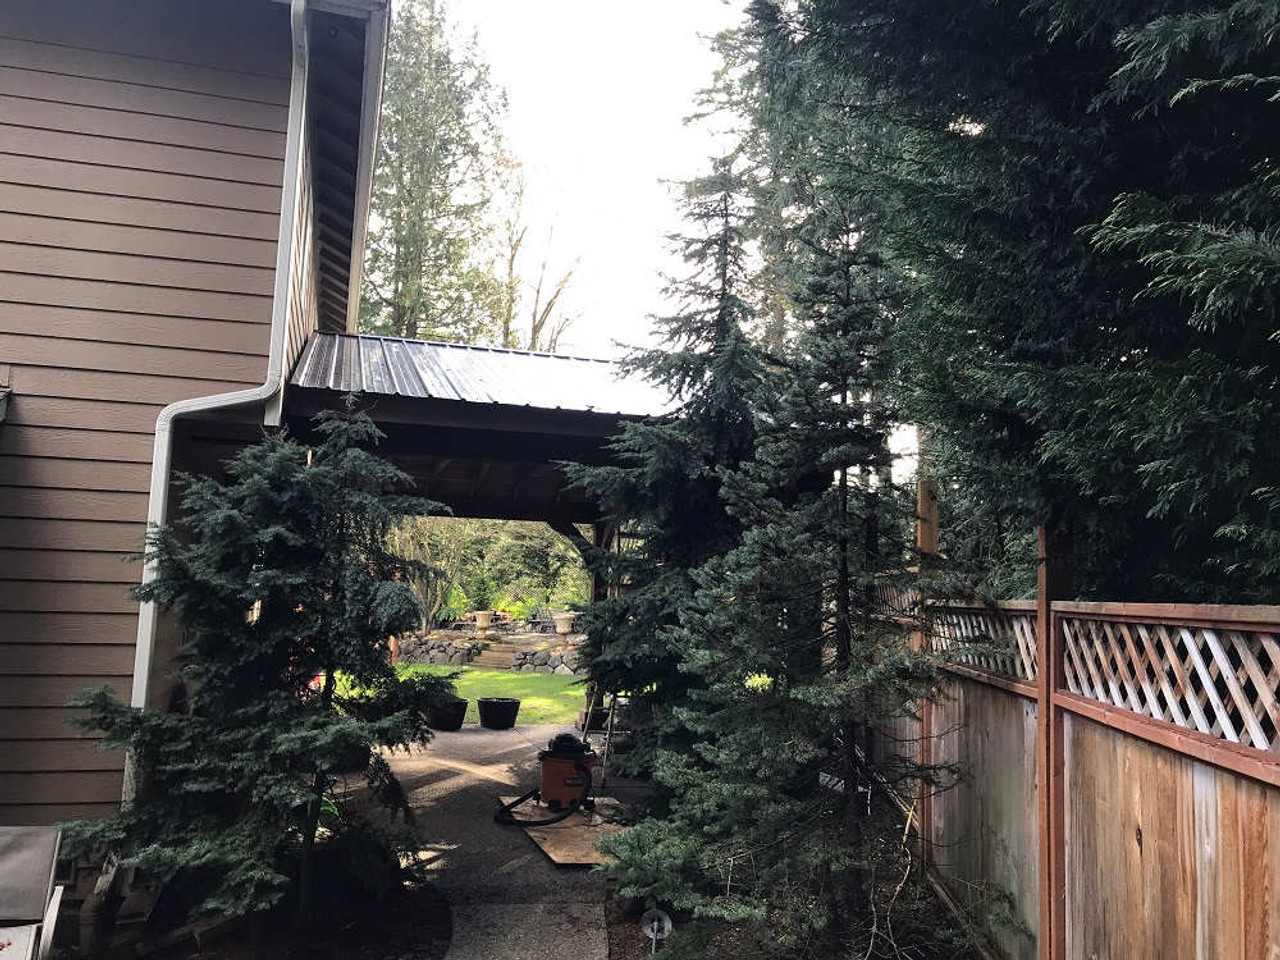 15x26 roof span Grand Cedar Pavilion Kit, Bothell, Washington